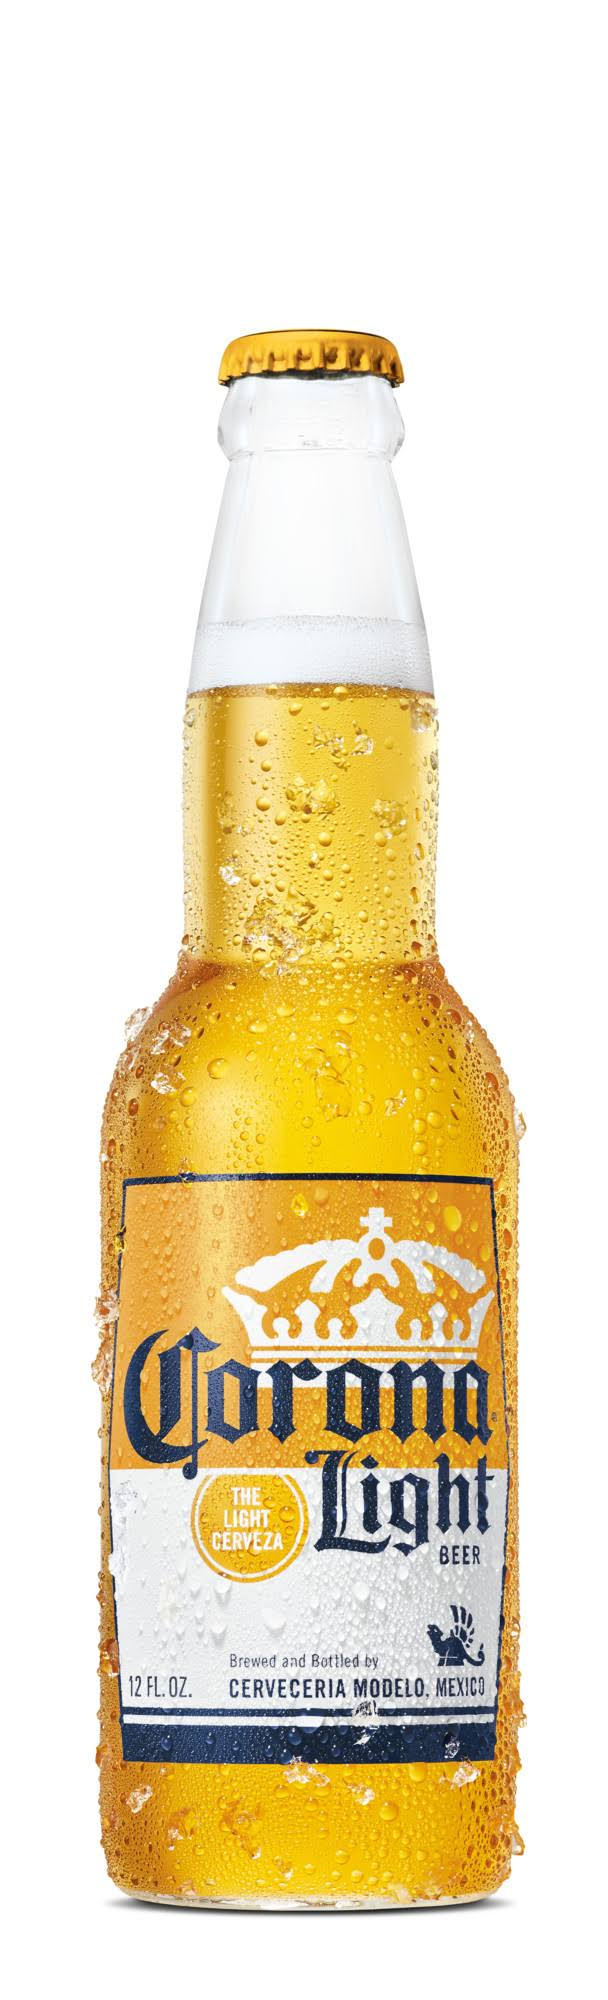 Corona Light Beer - 12 oz Bottle